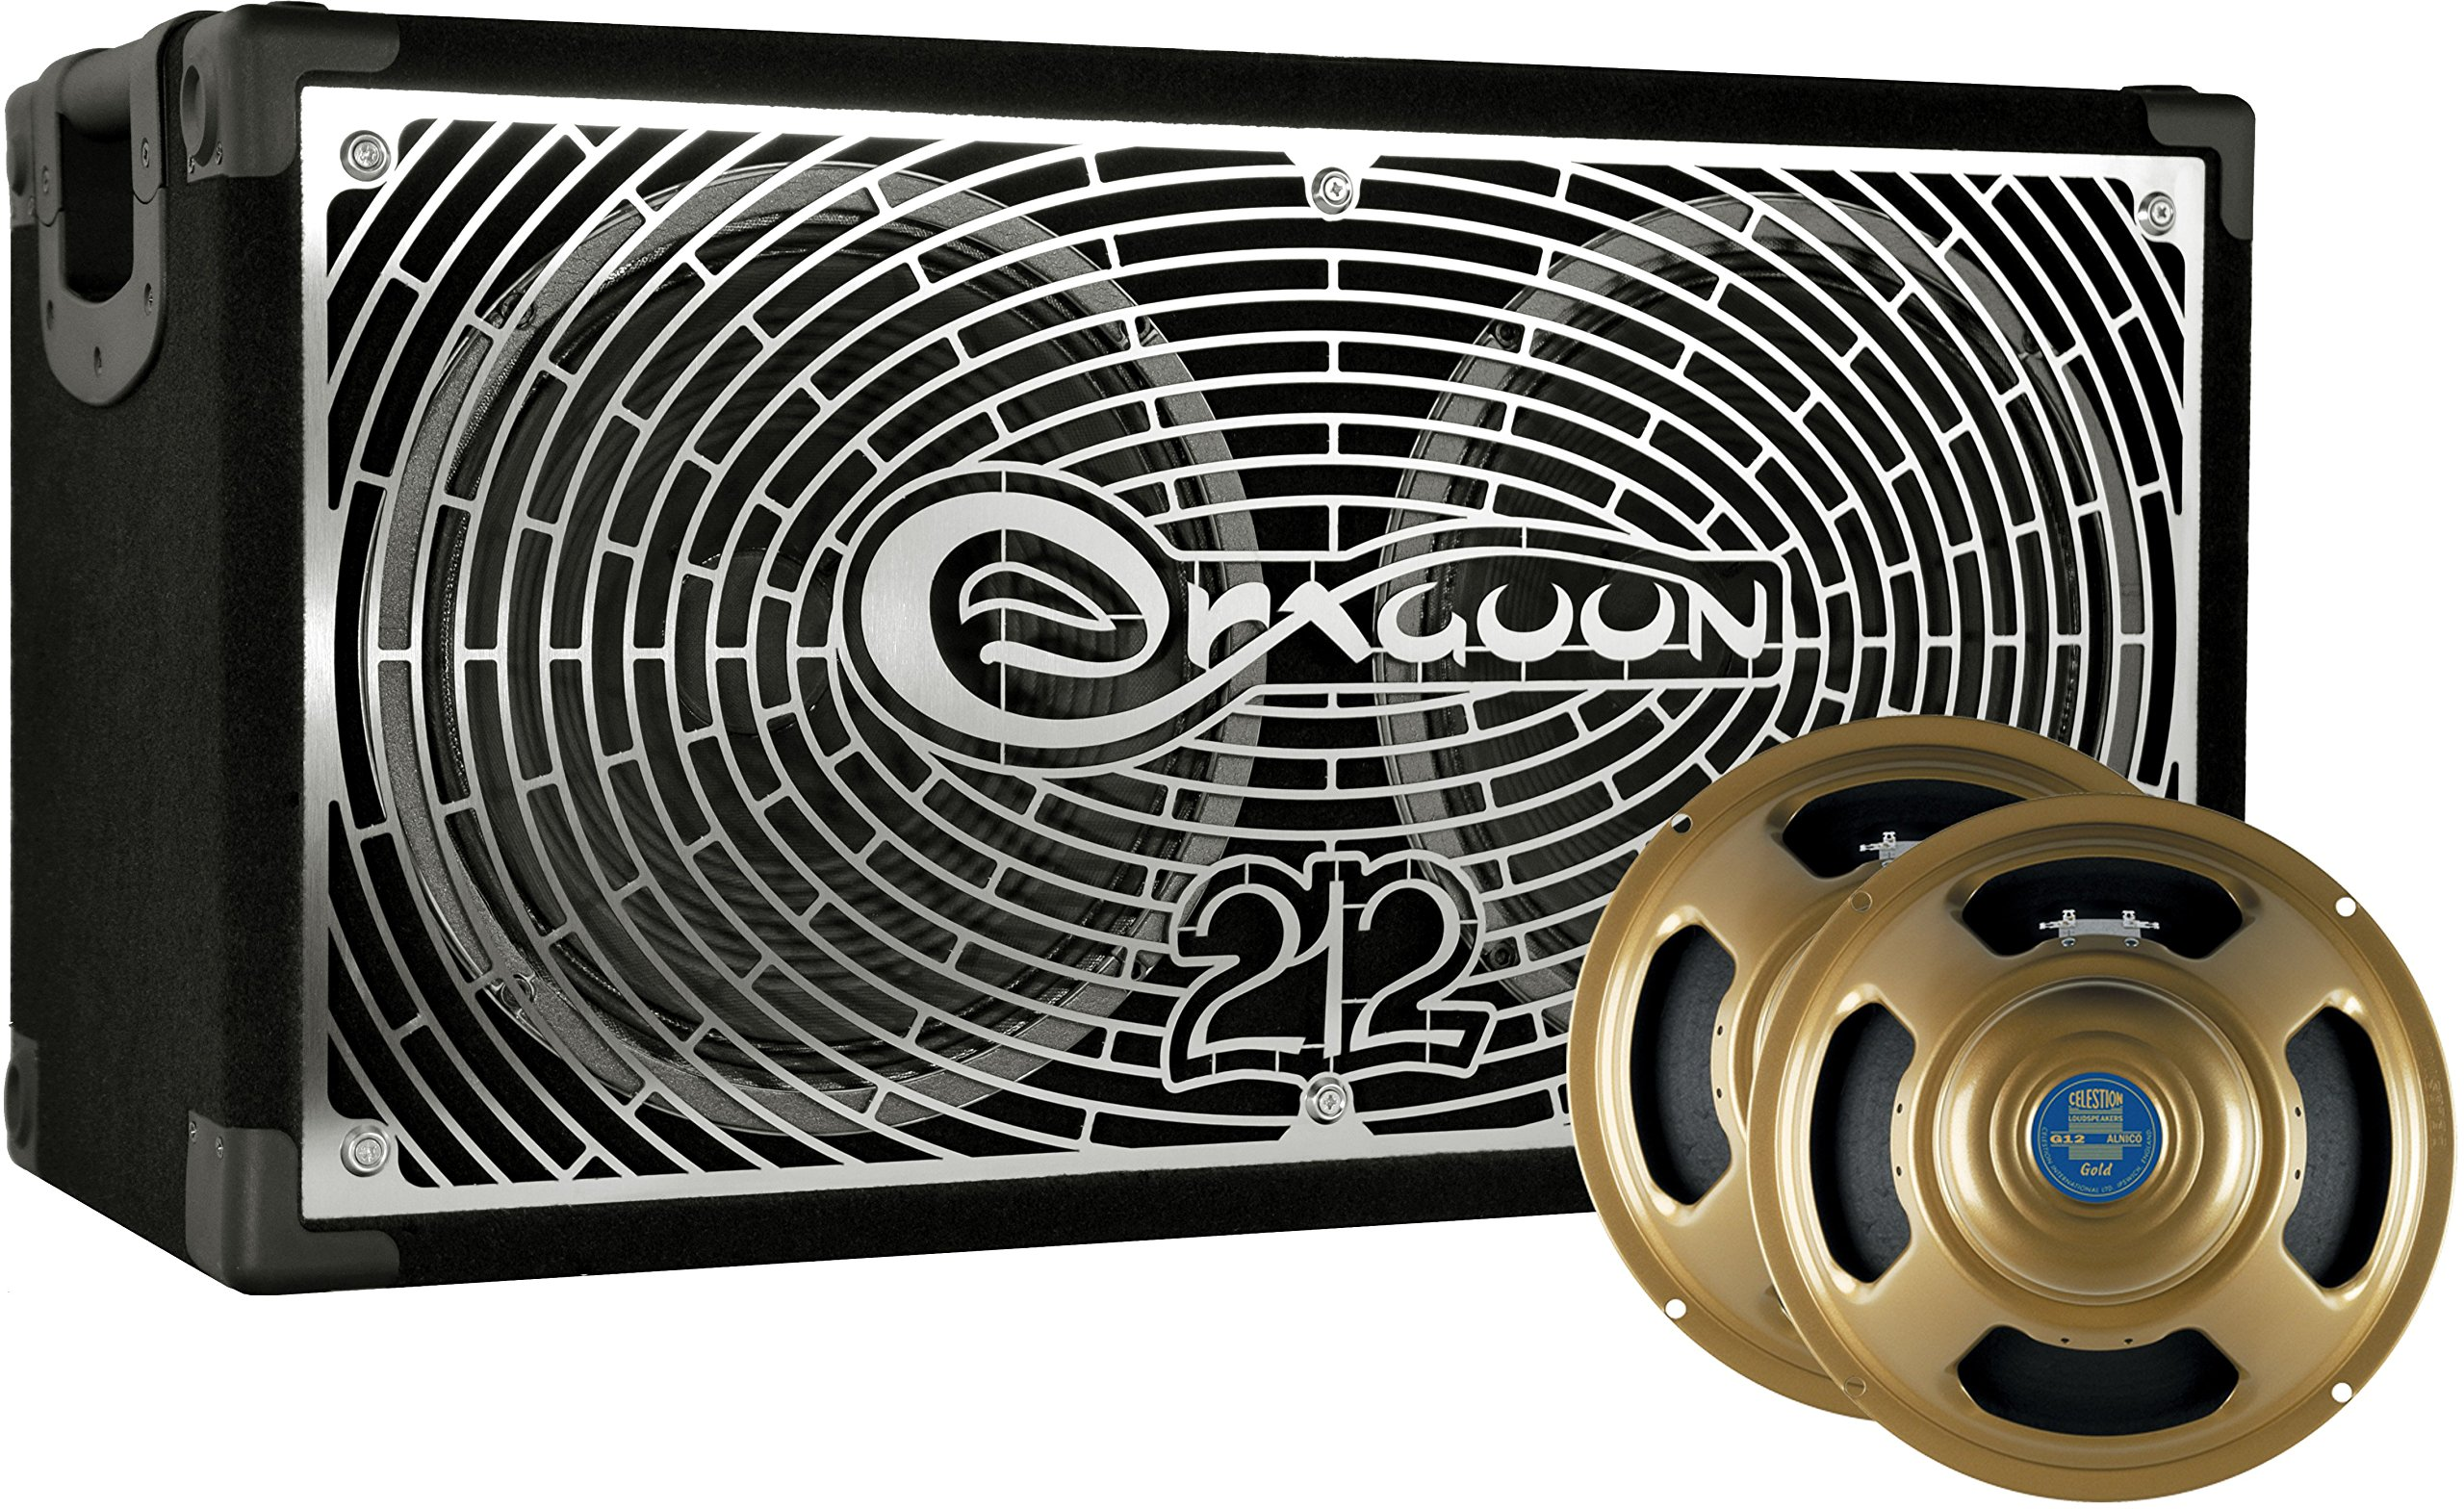 DRAGOON250C8G Handcrafted High Performance 2x12 Inches Guitar Speaker Cabinet with Celestion G12 Alnico Gold